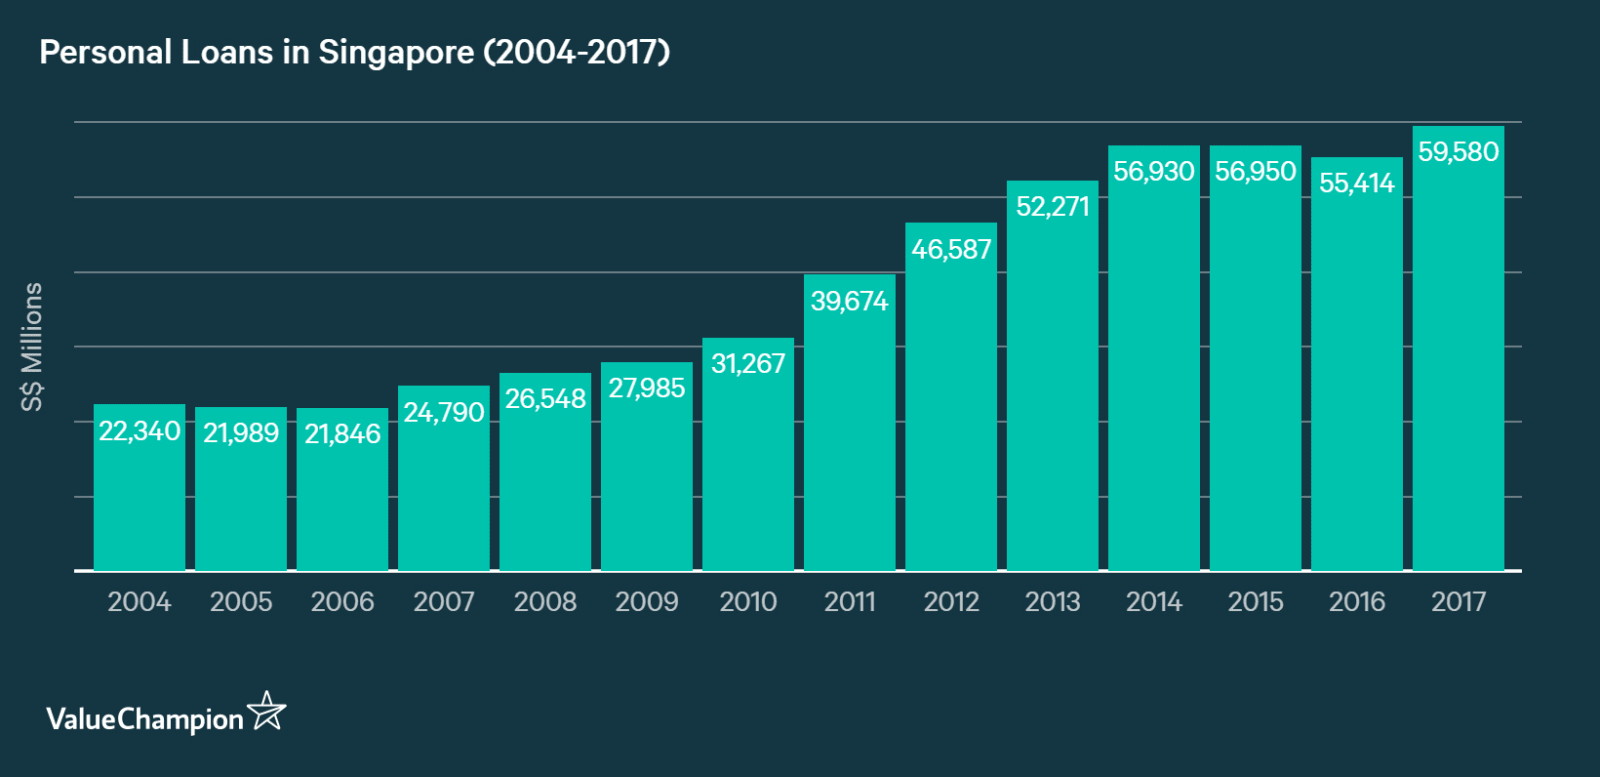 graph showing growth of personal loans, including personal instalment loans, payday loans, student loans, etc., in Singapore from 2004 to 2017